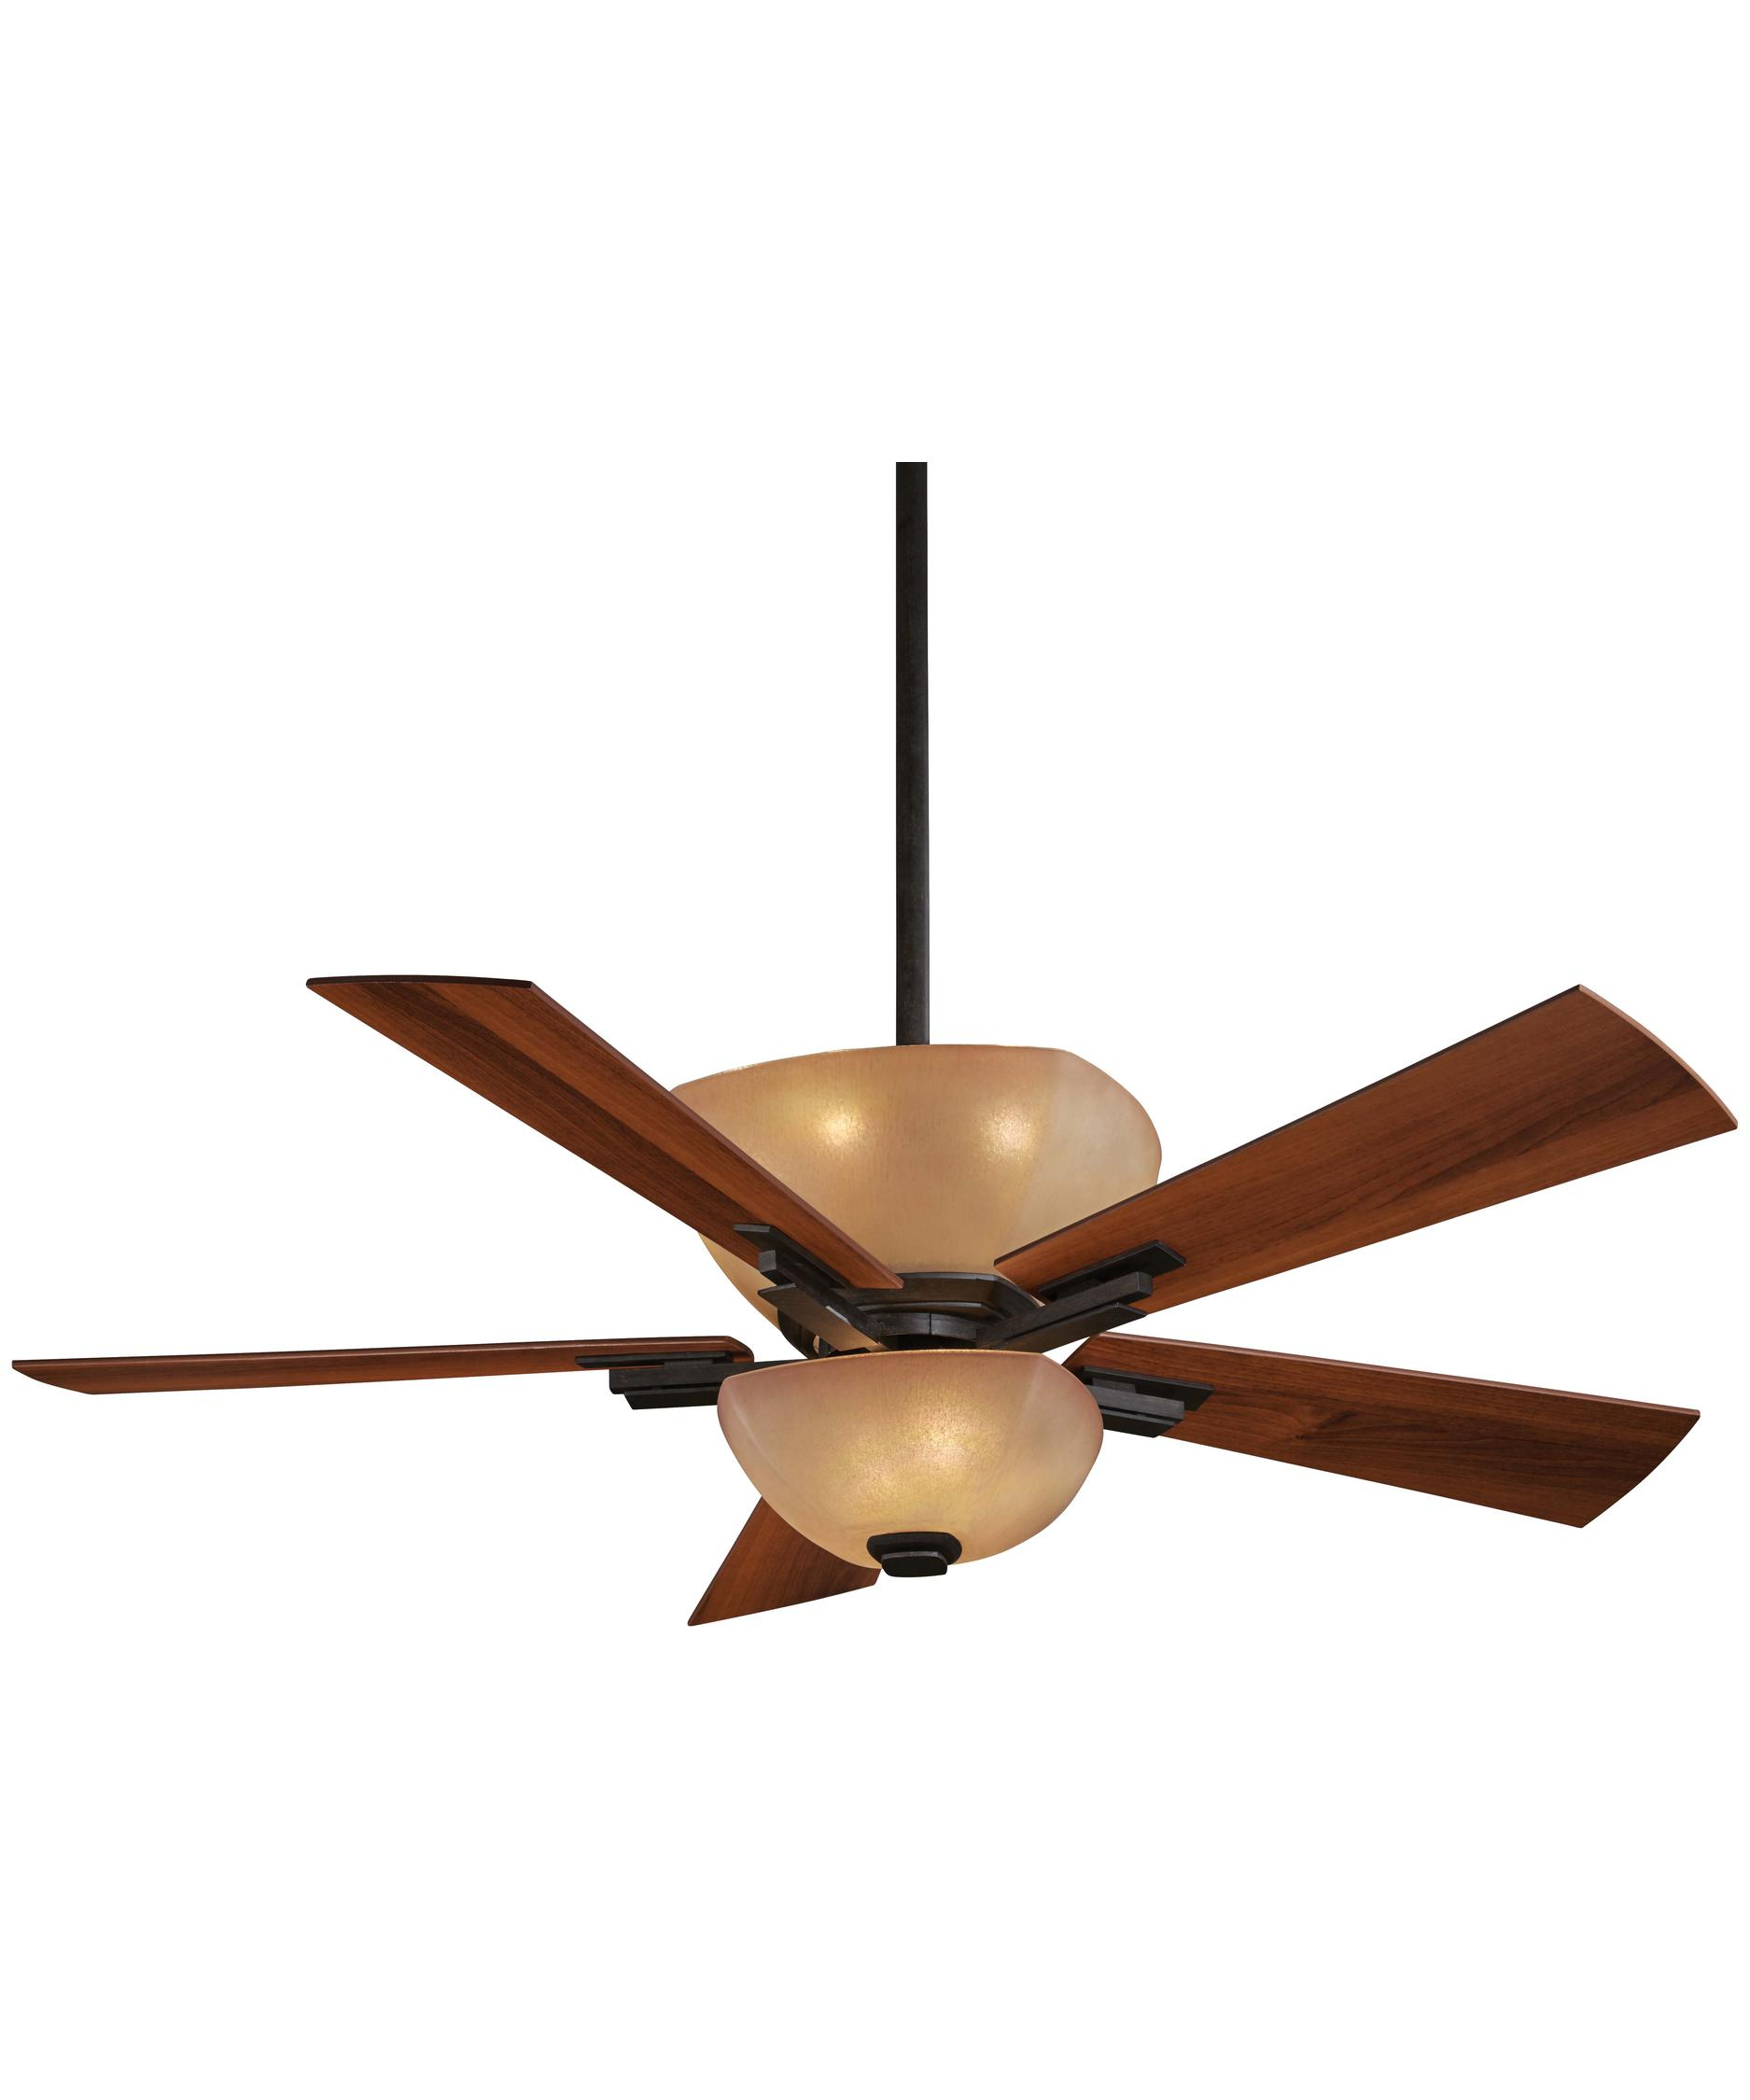 shown in iron oxide finish and venetian scavo glass - Minka Aire Fans